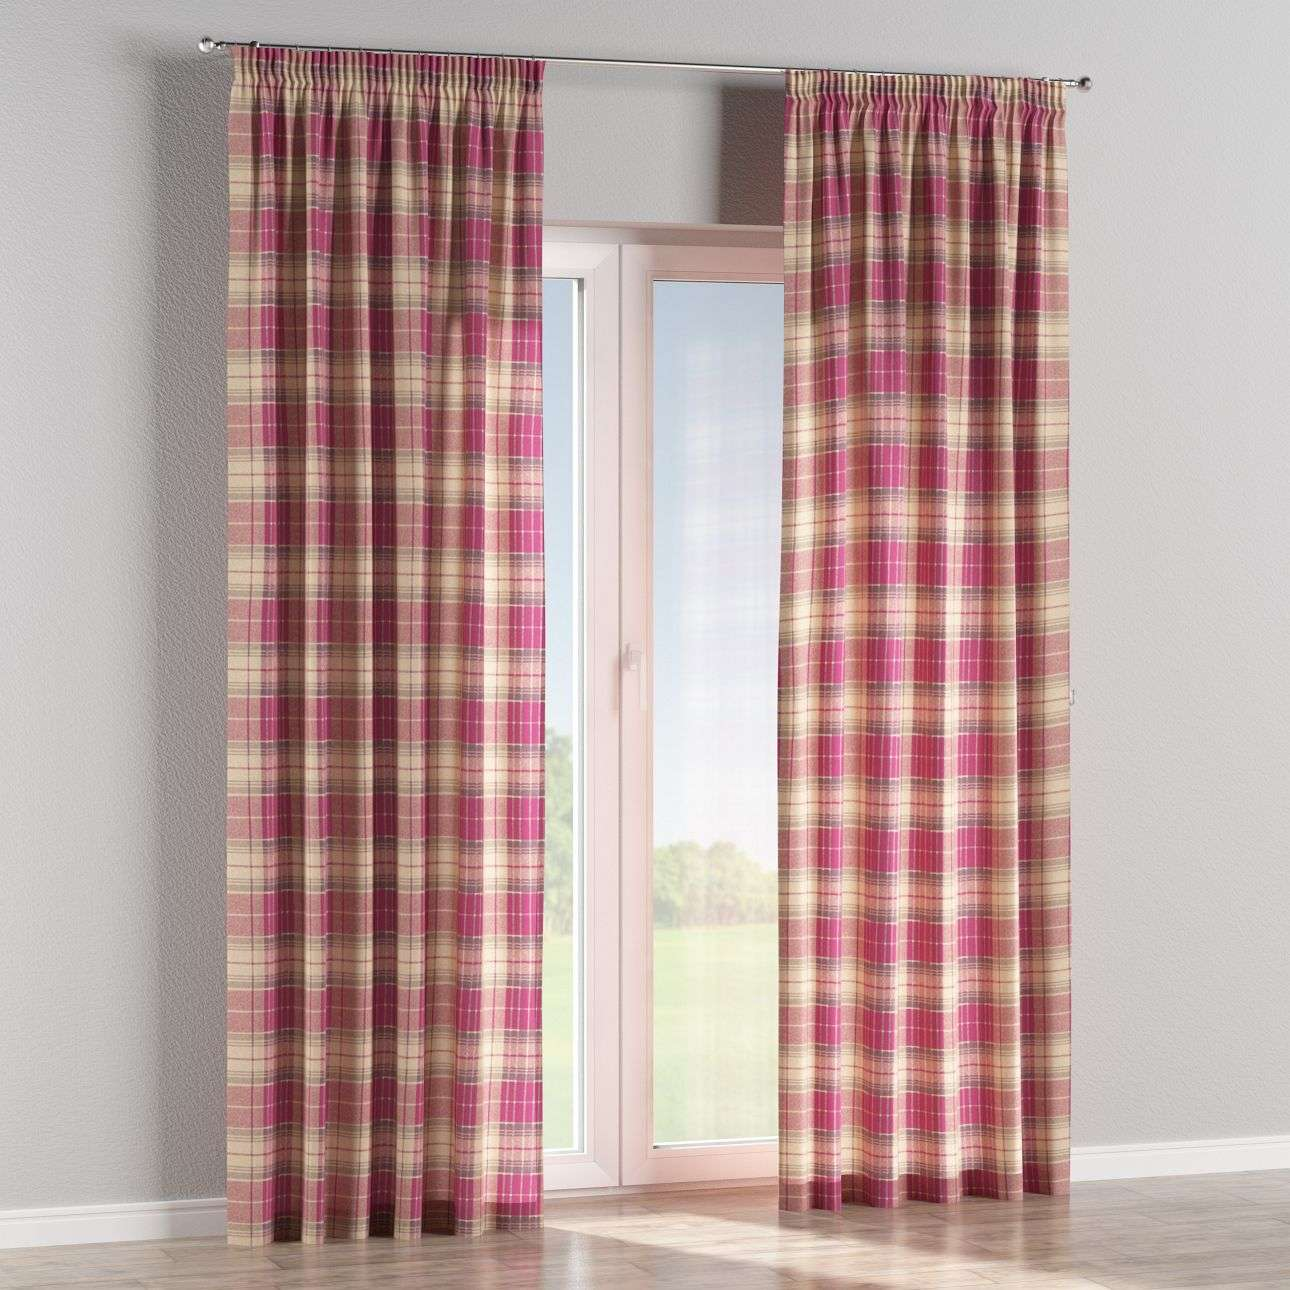 Pencil pleat curtains 130 x 260 cm (51 x 102 inch) in collection Mirella, fabric: 142-07